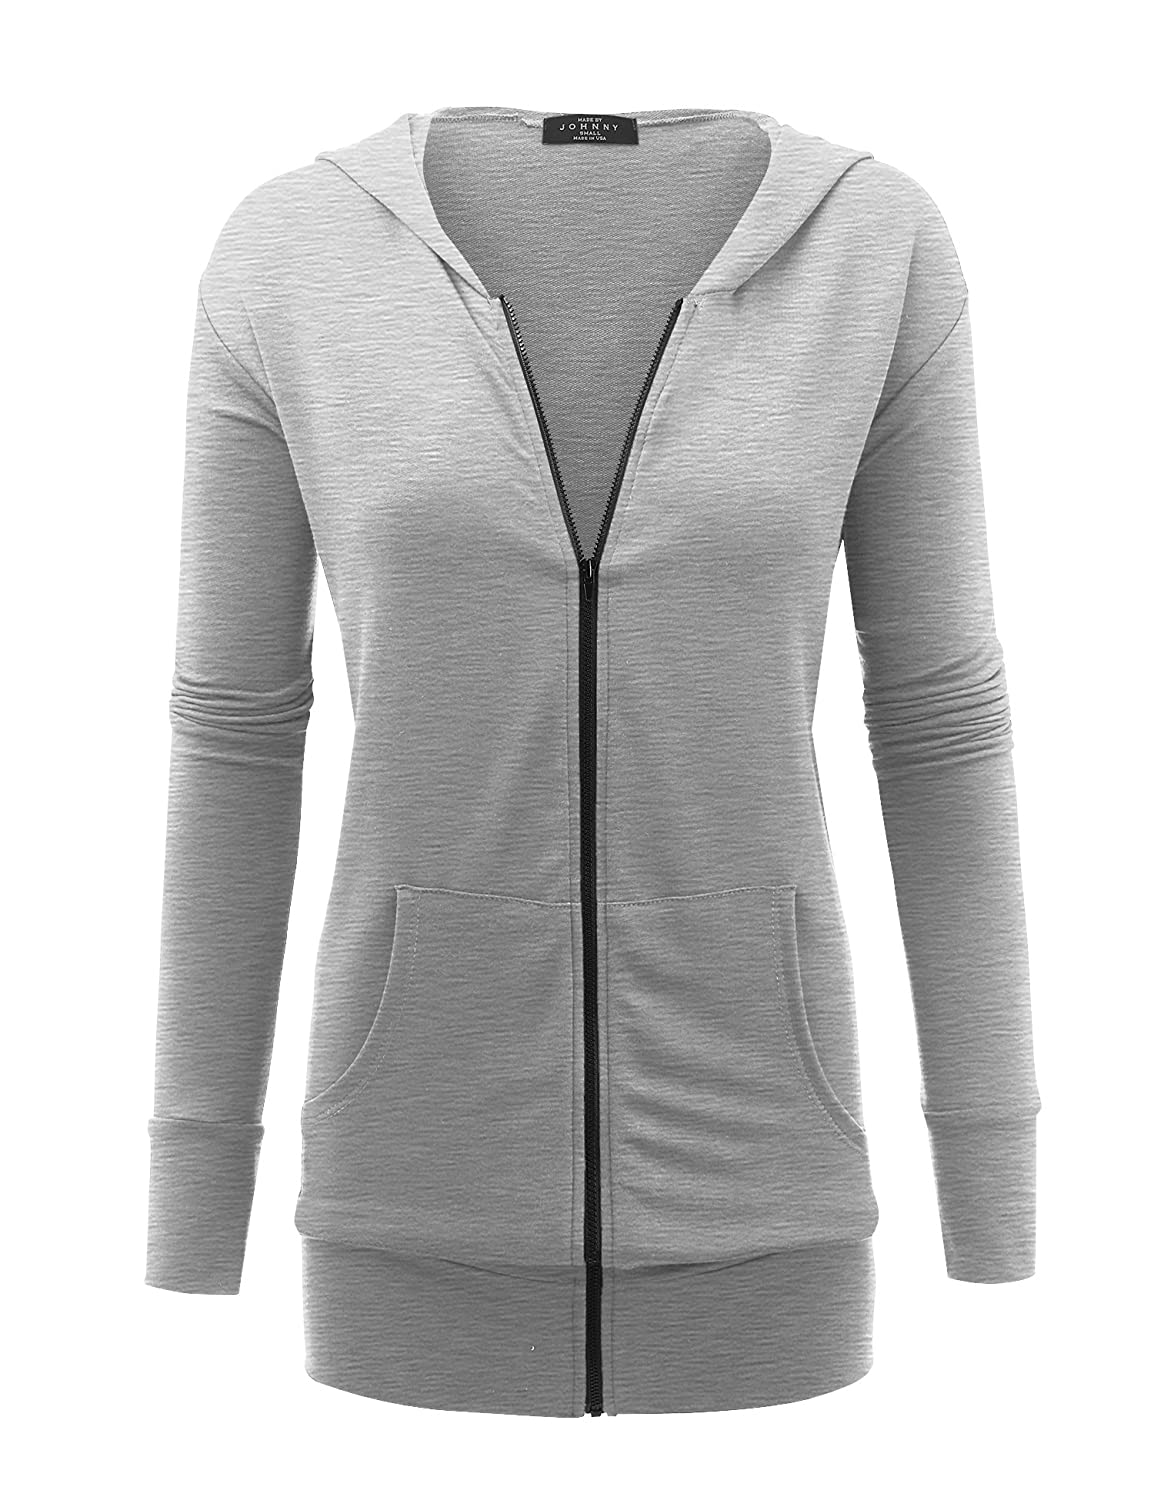 Made By Johnny Womens Lightweight Zip up Hoodie Jackets